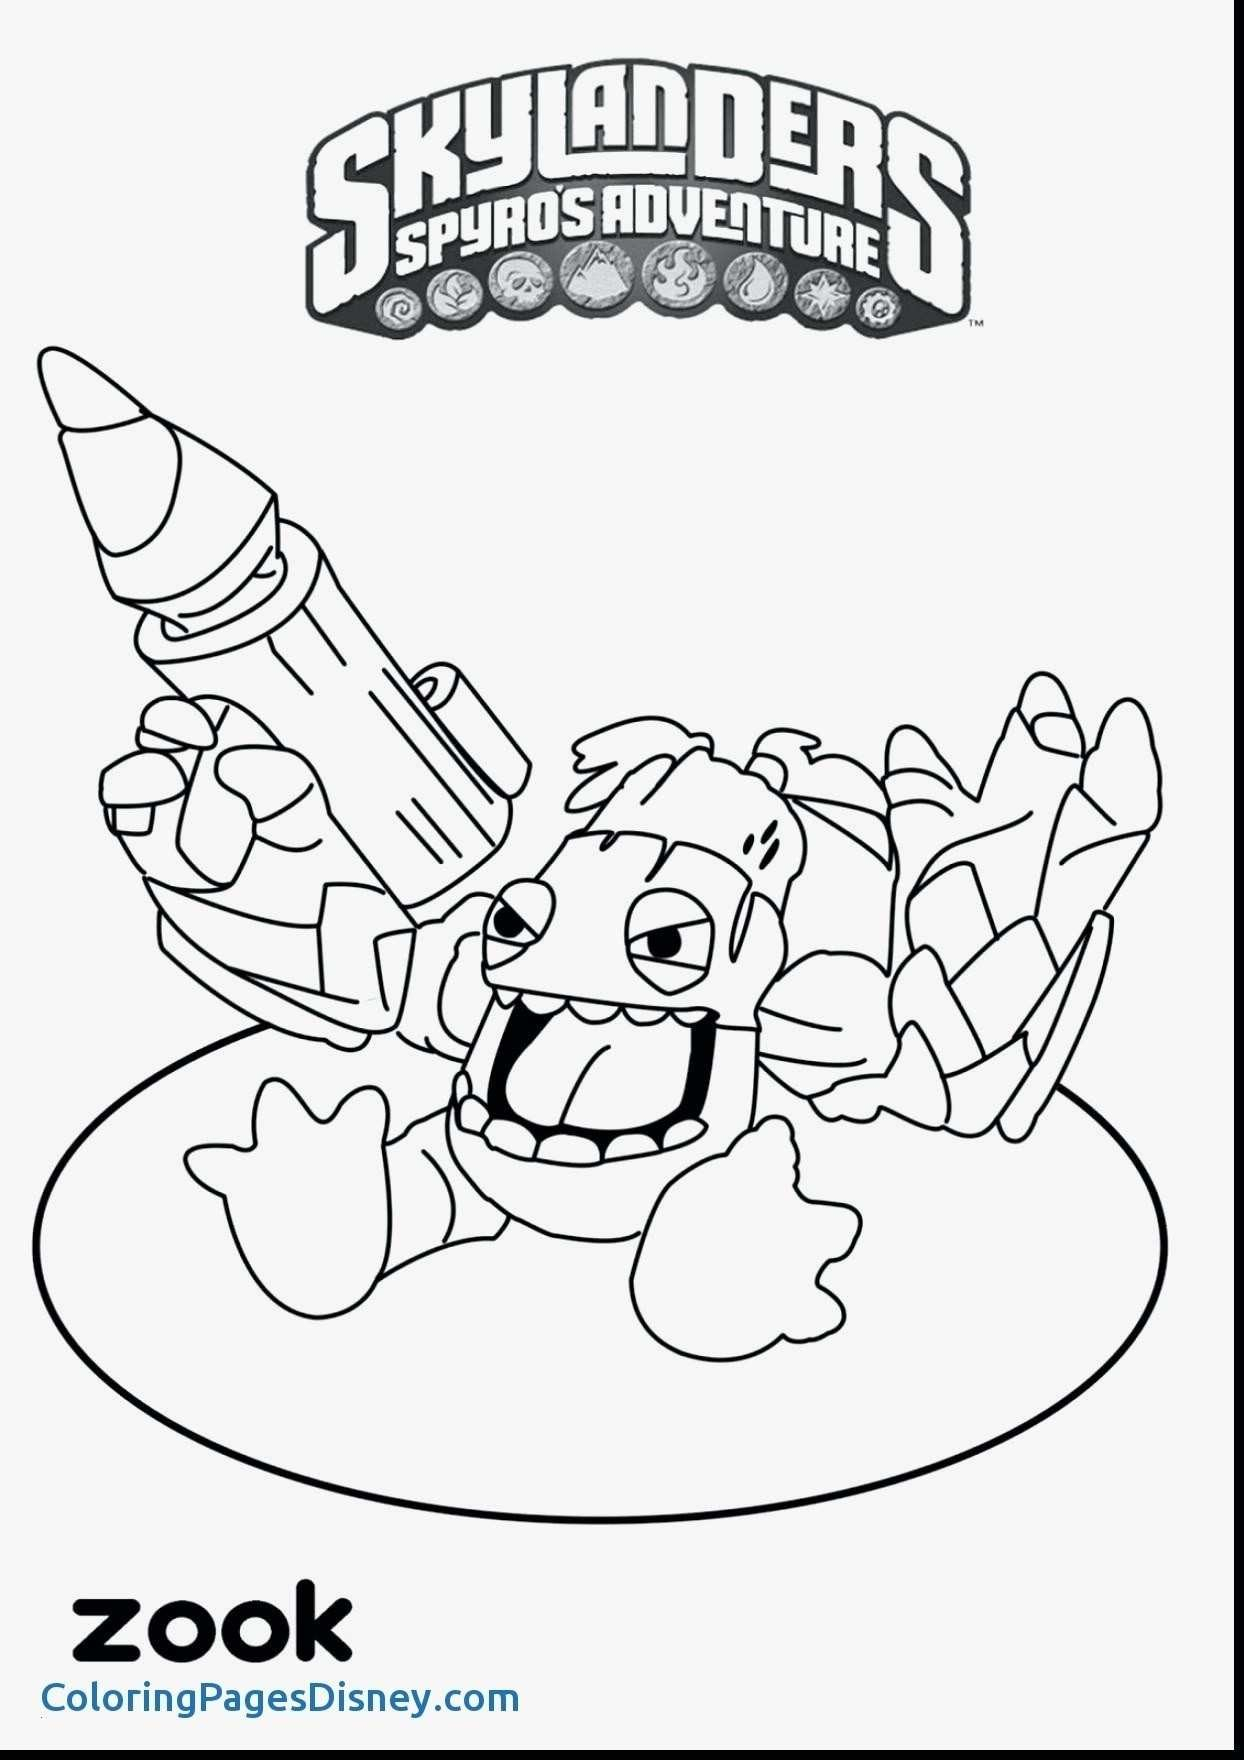 Gingerbread Coloring Pages Person Outline Coloring Page Best Of Gingerbread Coloring Pages Best